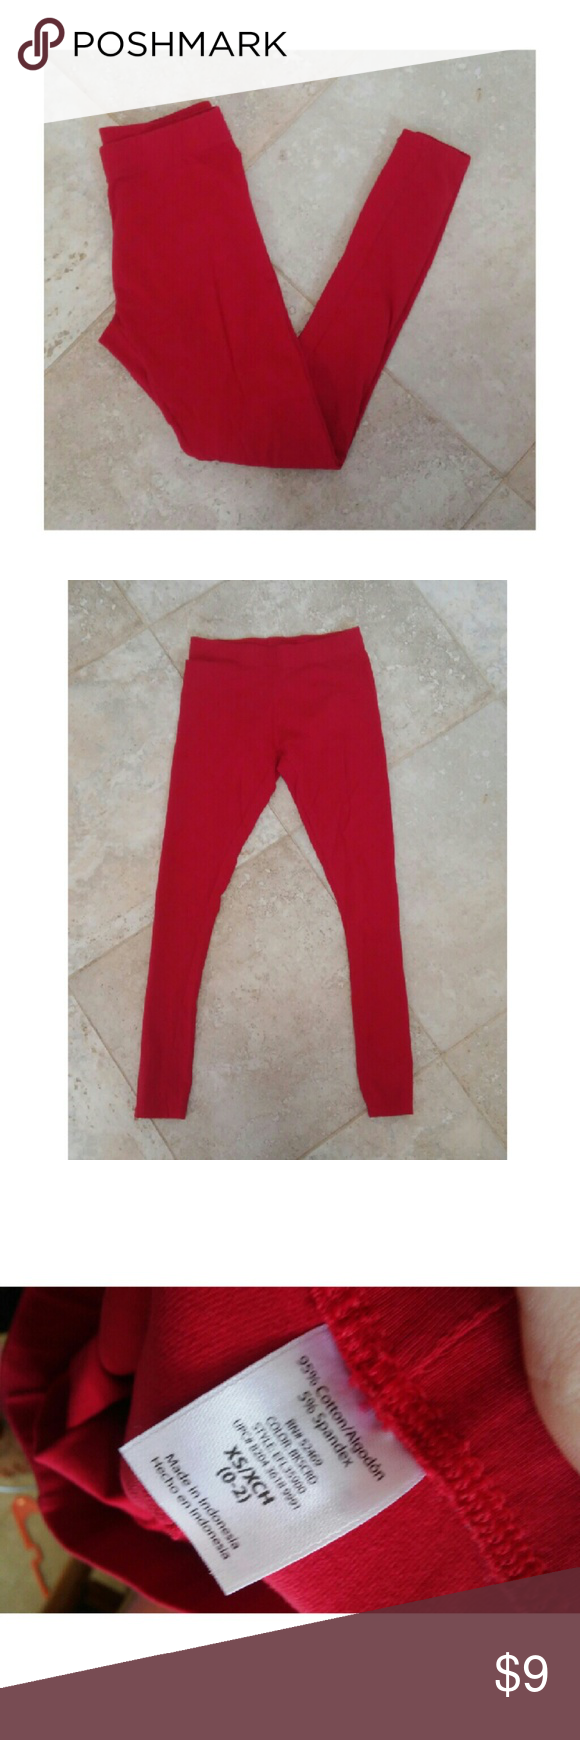 Red Full length leggings size XS (0-2) Red Full length leggings Size XS (0-2)   EXCELLENT CONDITION!   ***Charlotte Russe wedges are also available for sale in my other listings *** Pants Leggings